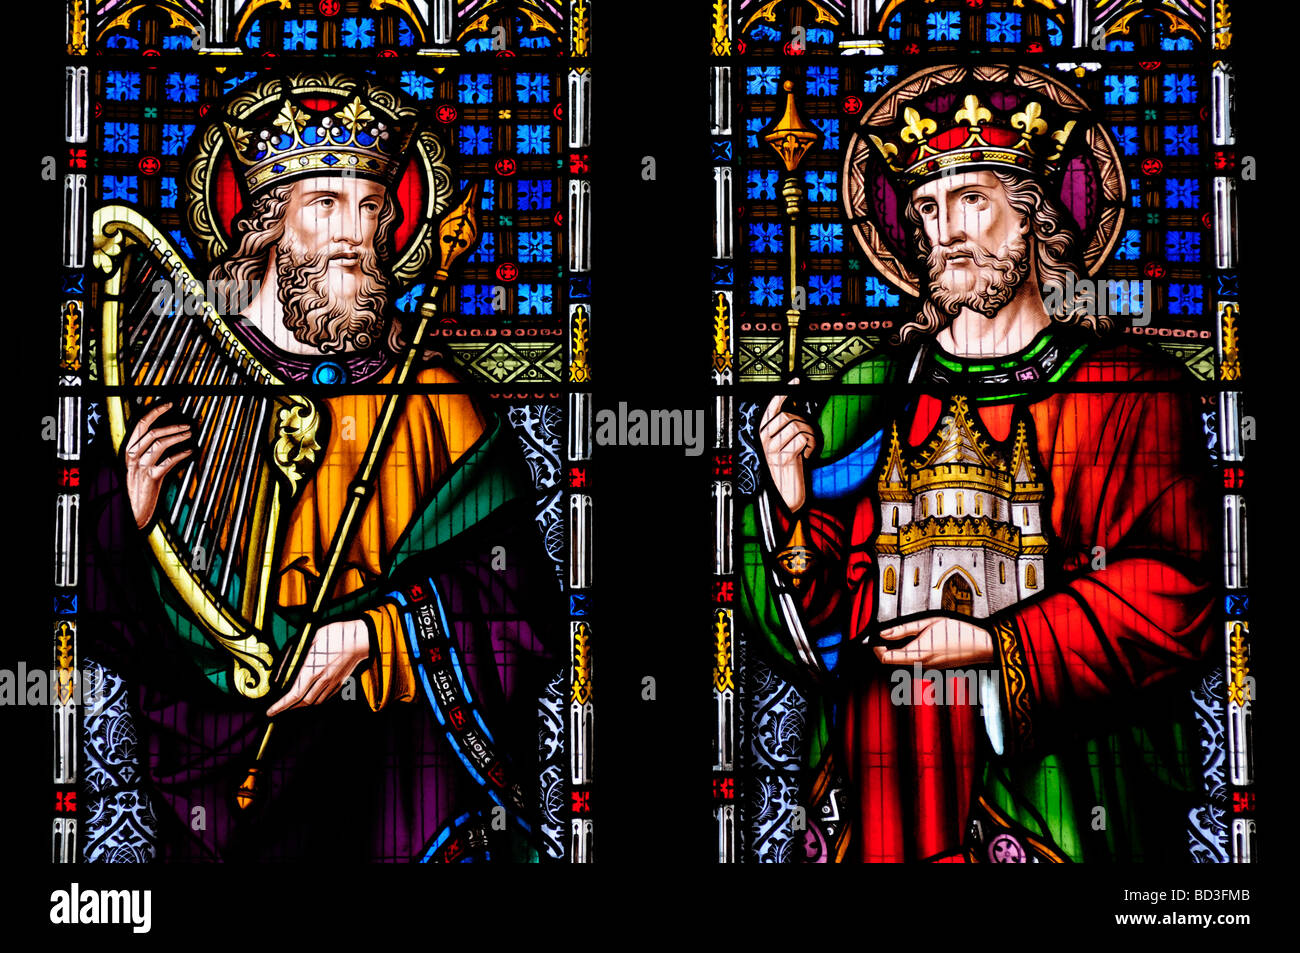 A Stained Glass Window in Peterborough Cathedral featuring King David and King Solomon, Cambridgeshire England UK Stock Photo